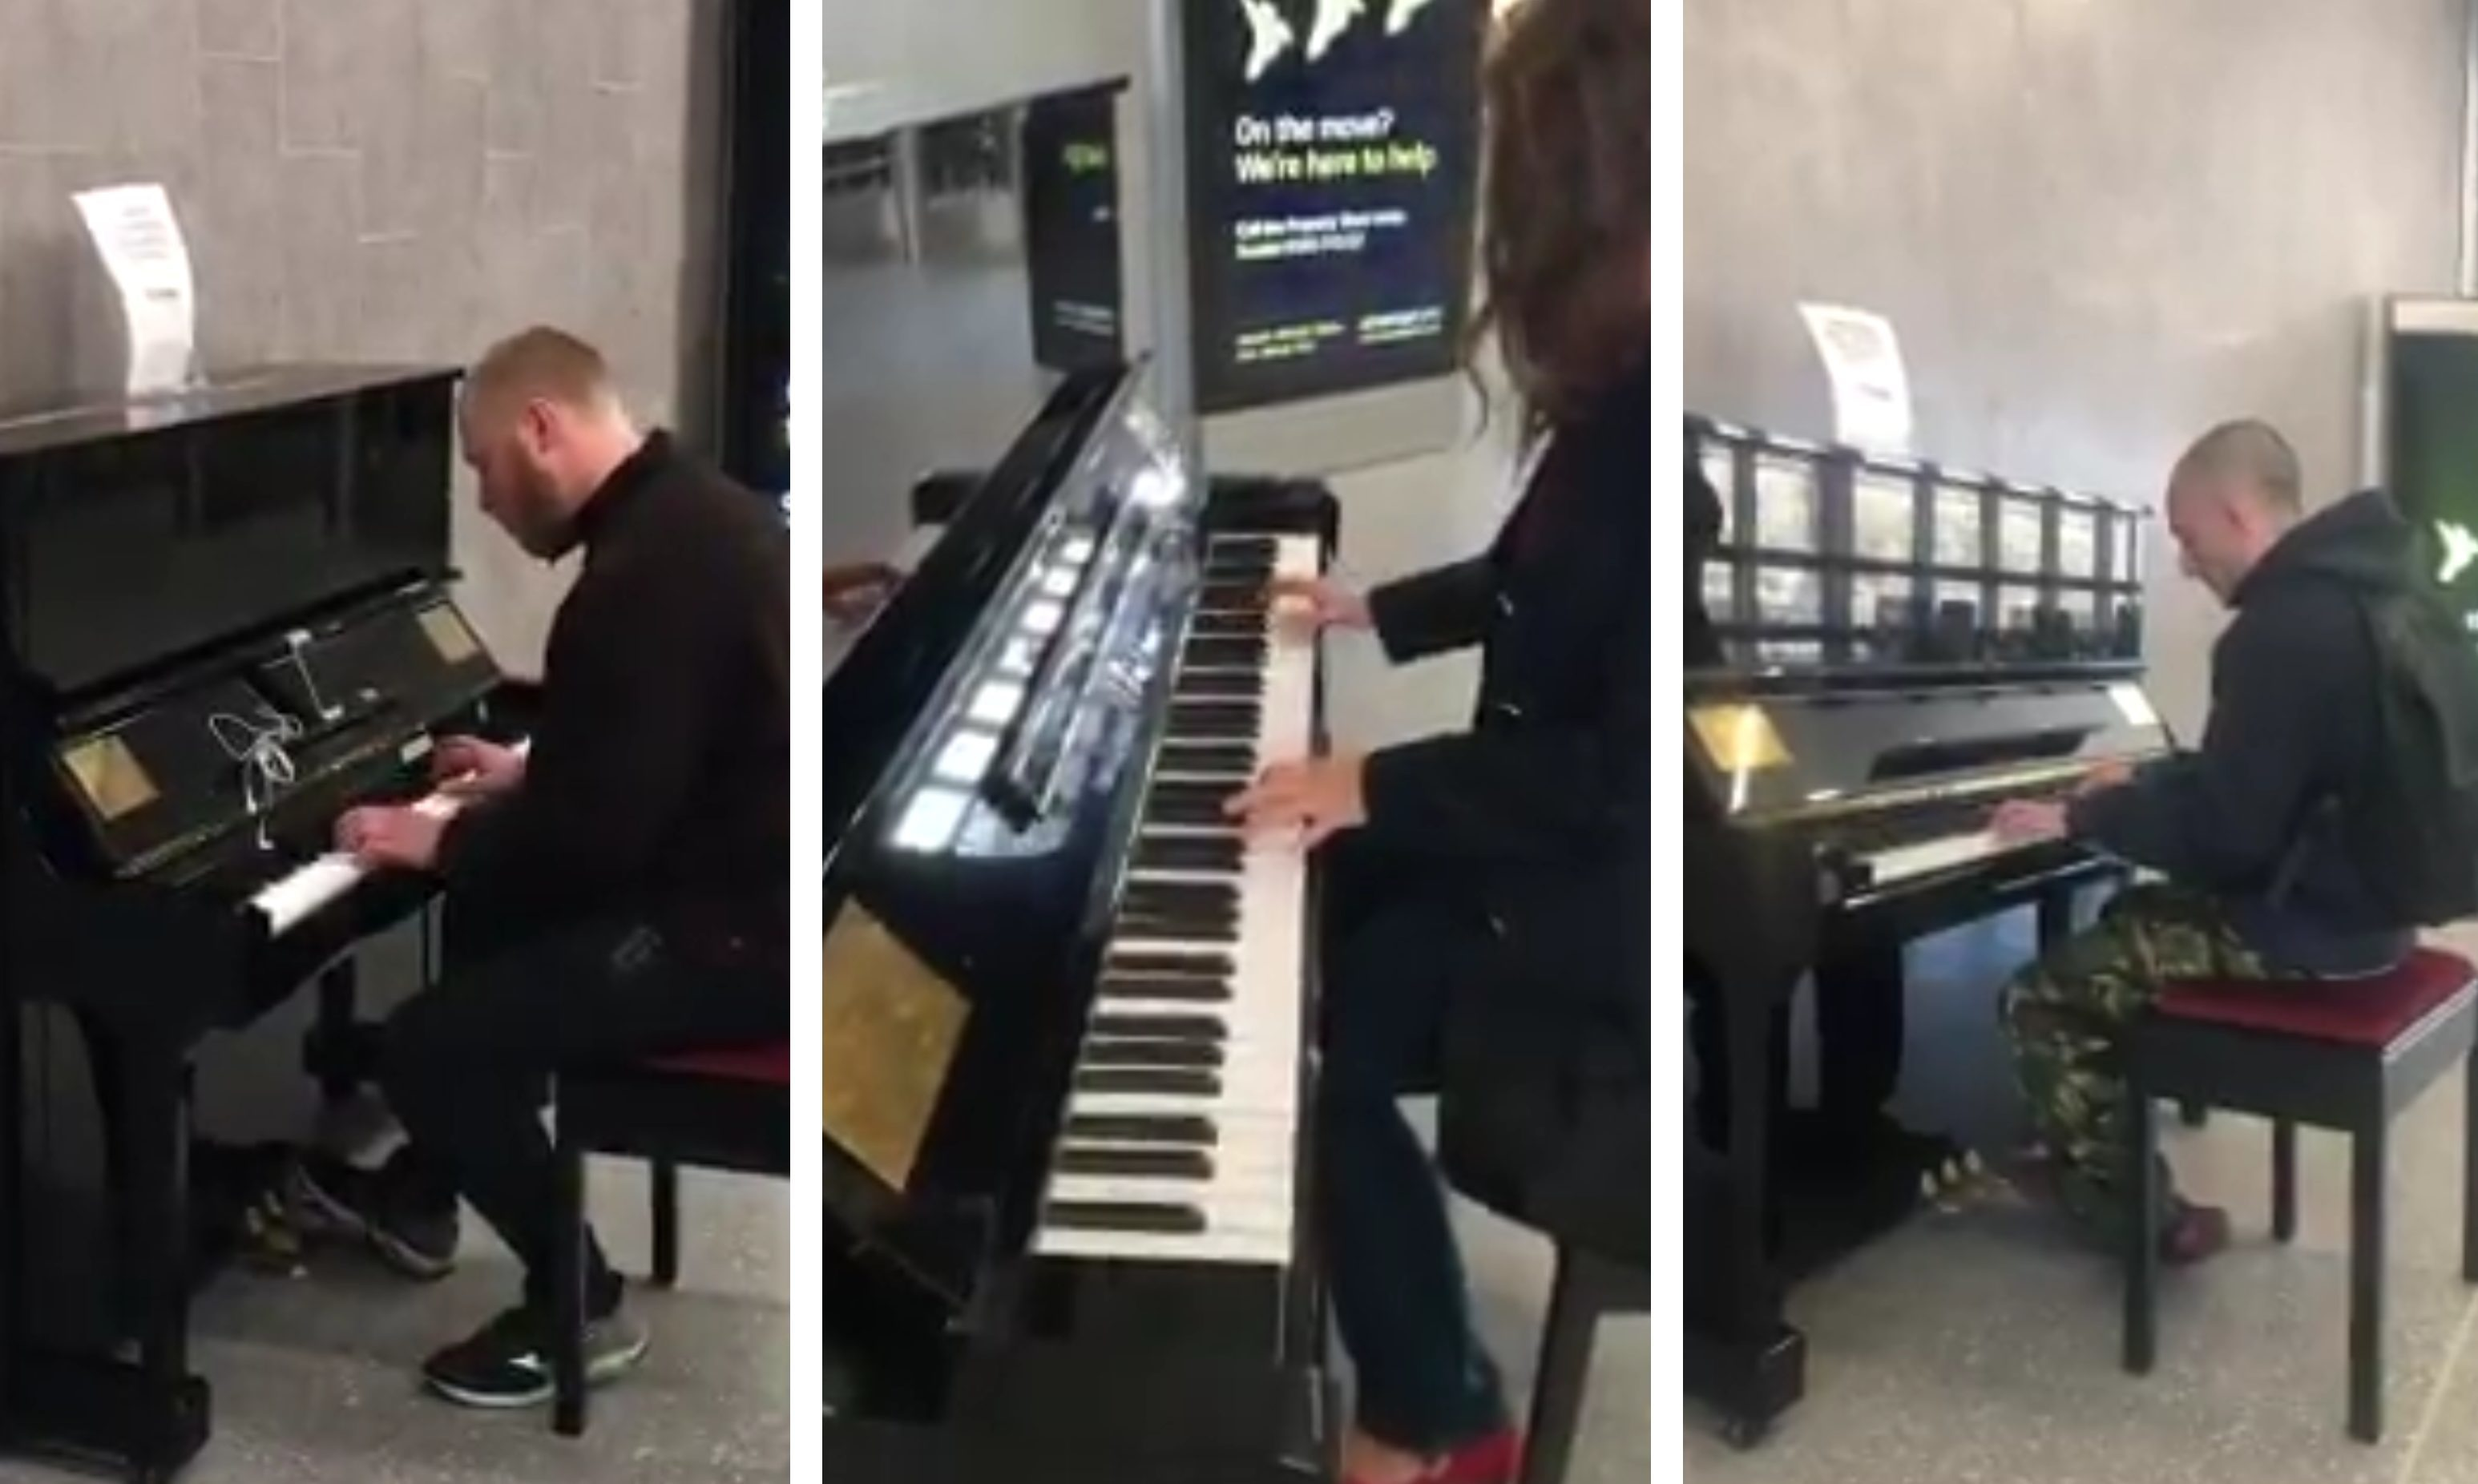 Dundee's new Peoples Piano being played.